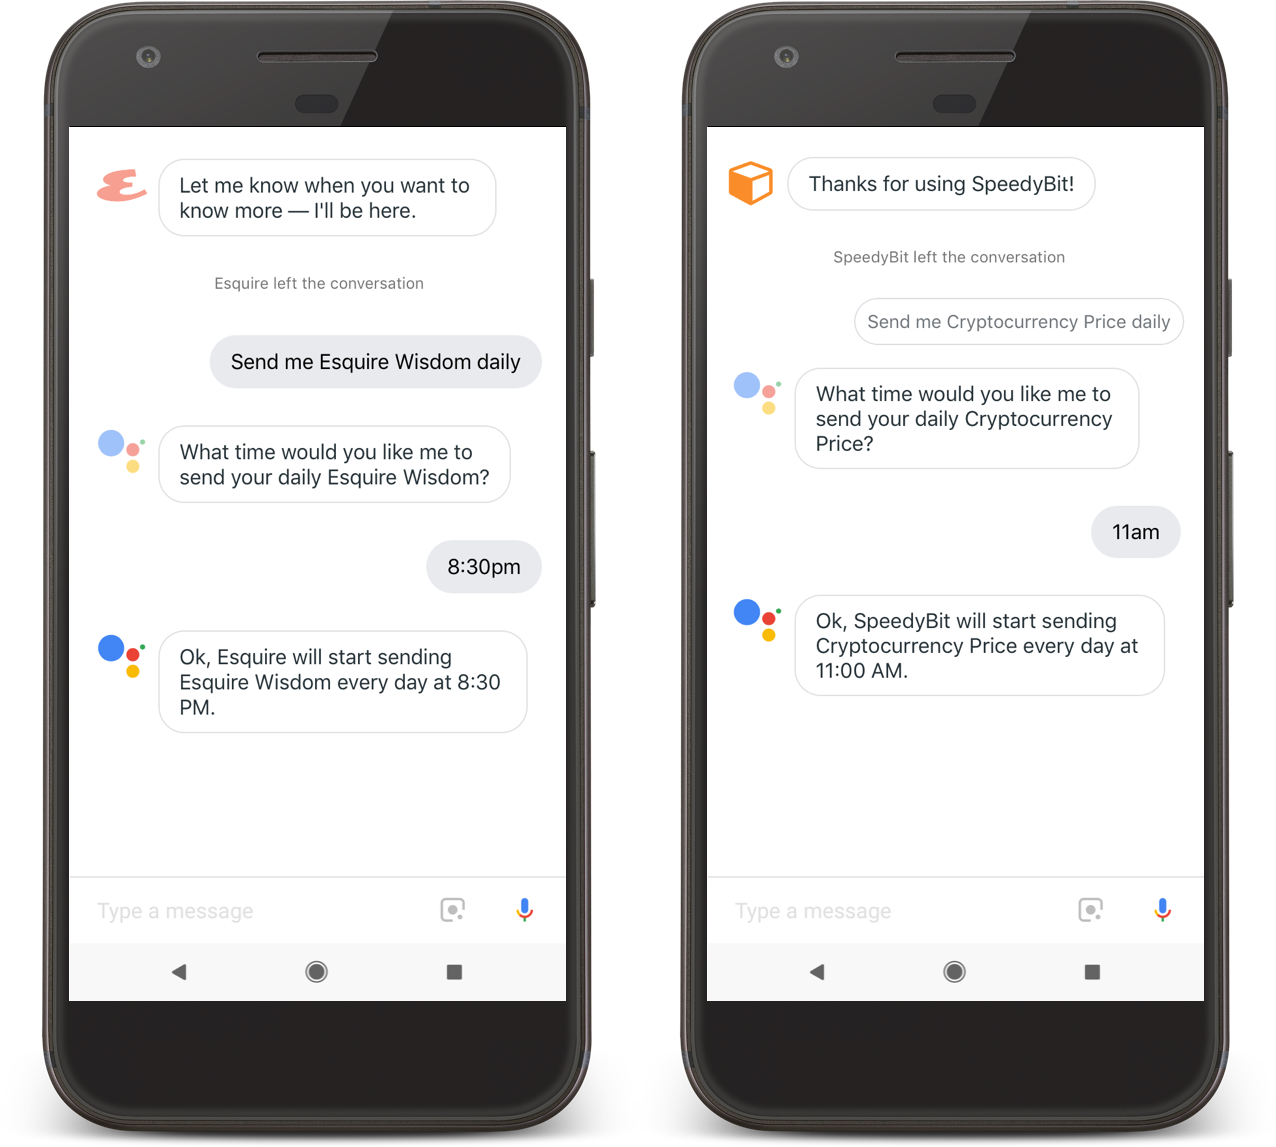 Google Developers Blog: New creative ways to build with